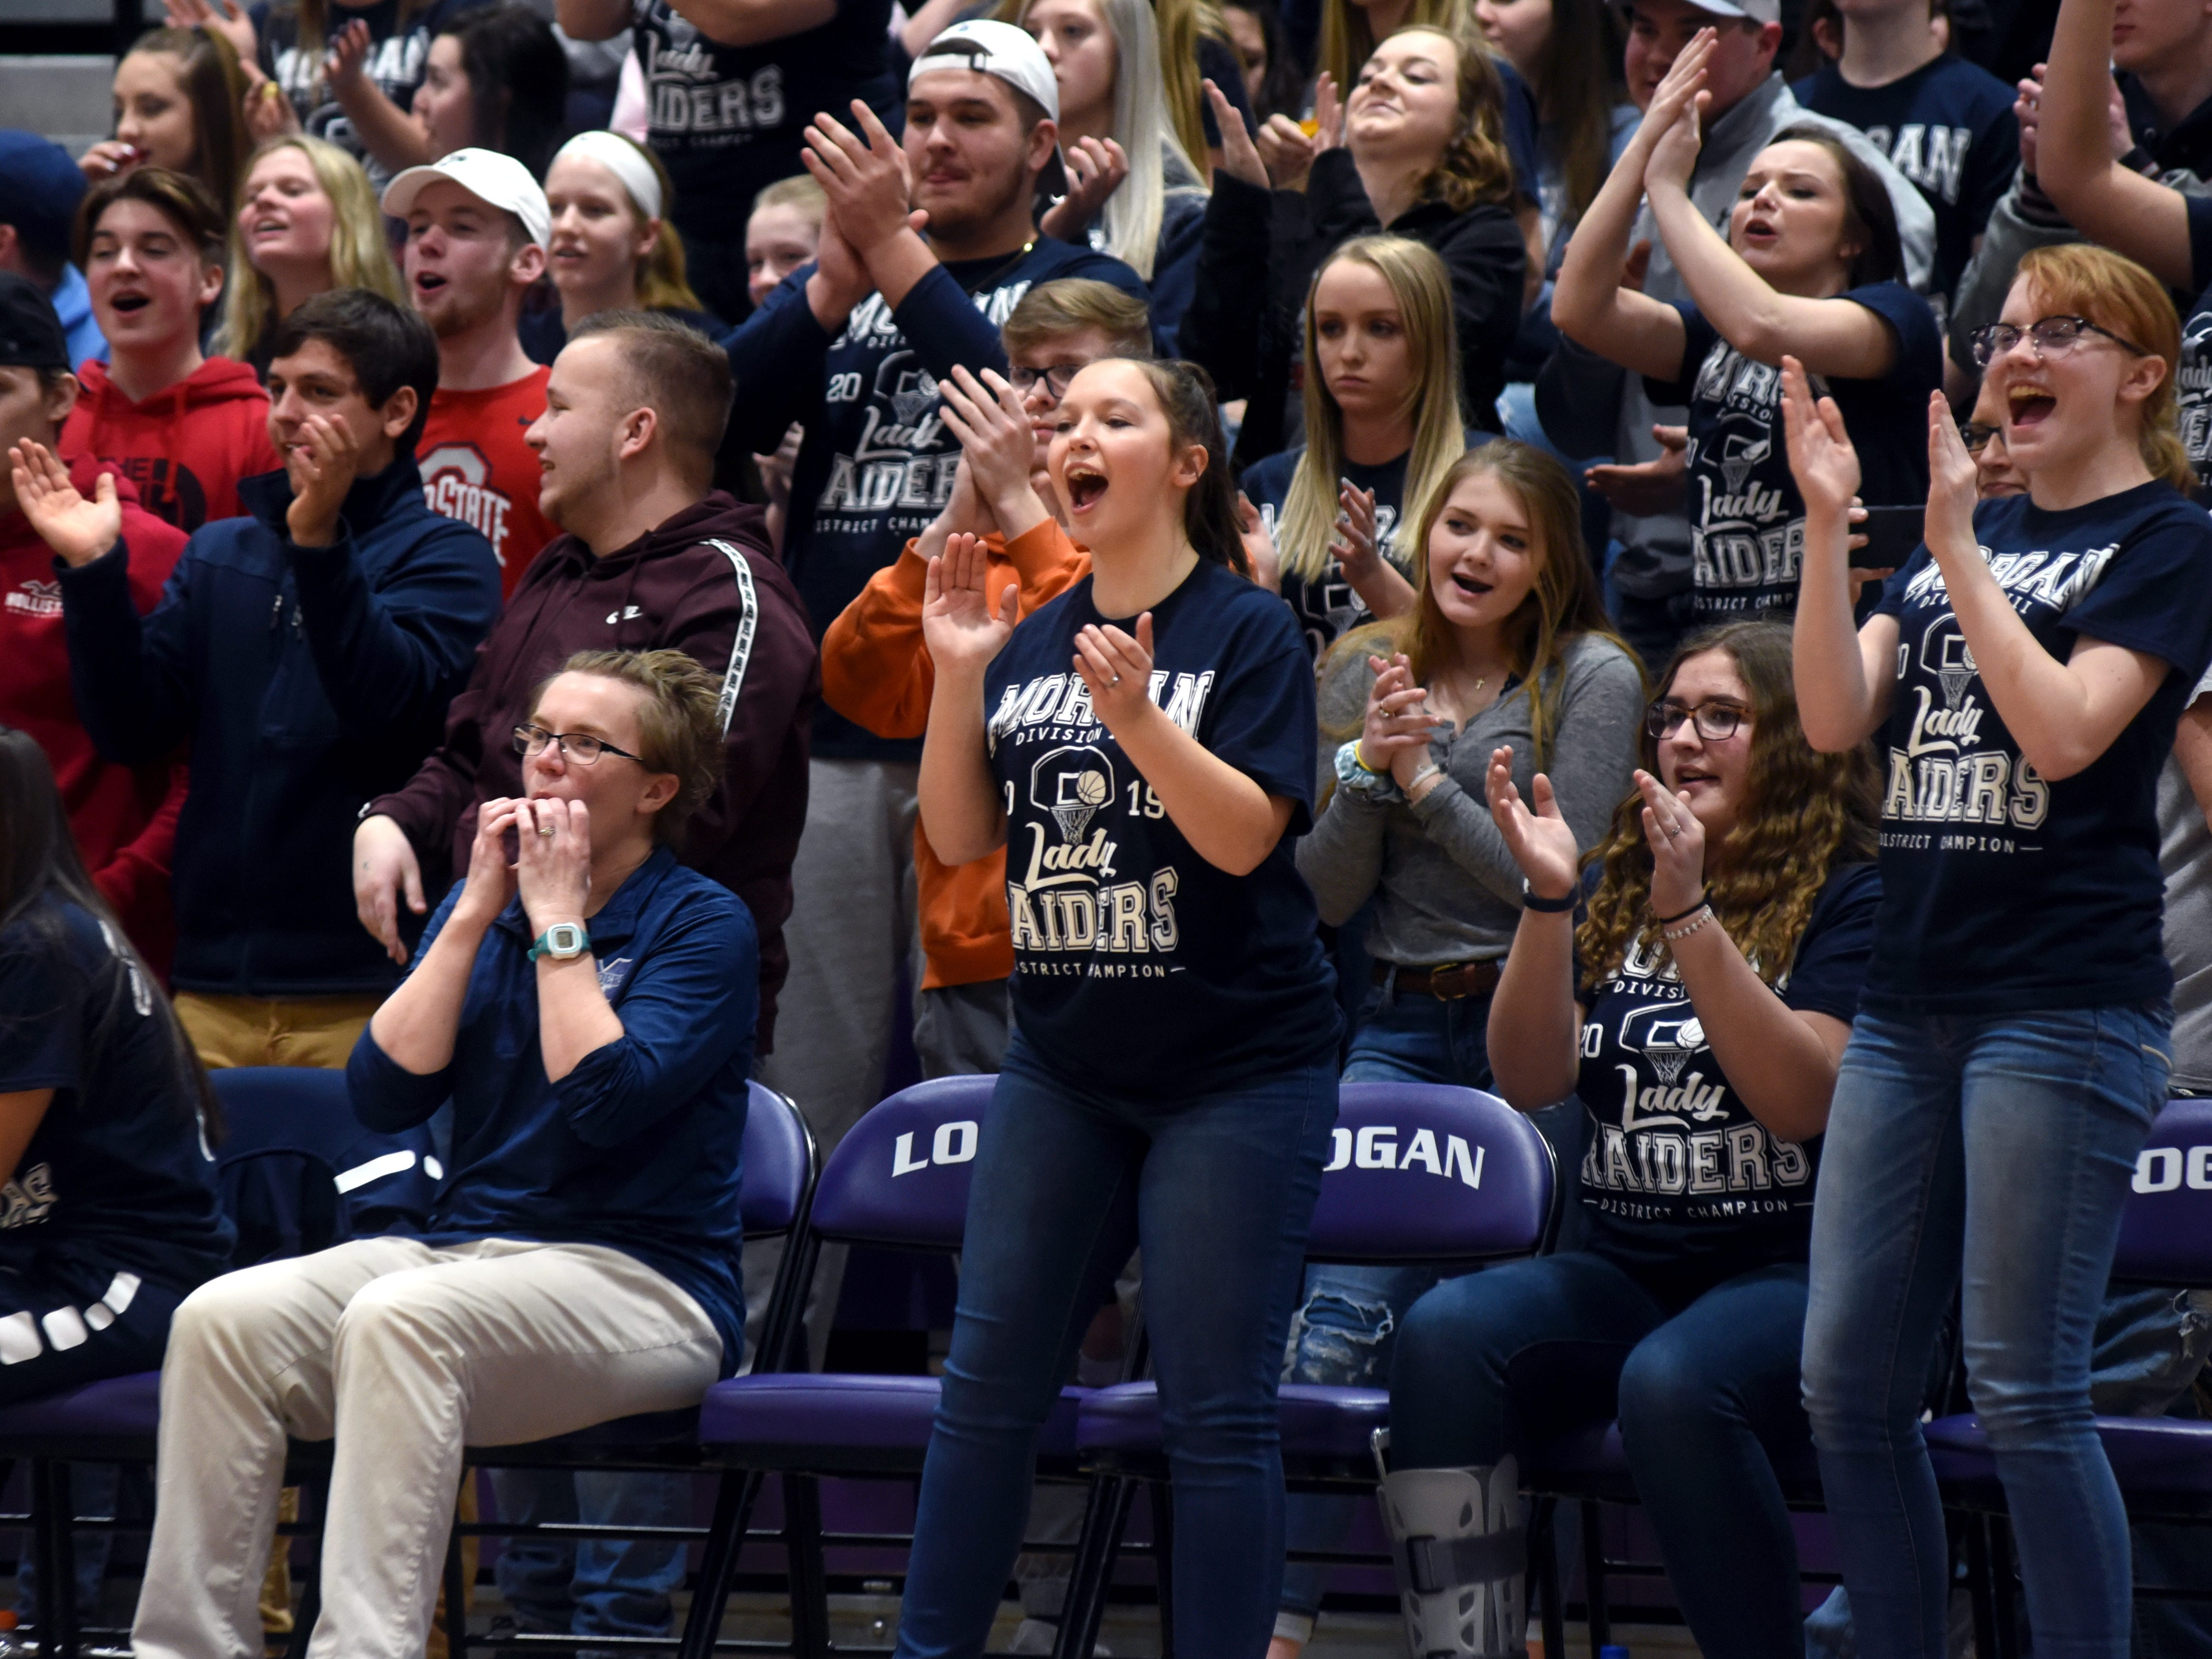 Fans celebrate during Morgan's 56-55 loss to Wheelersburg in a Division III regional semifinal at Logan.